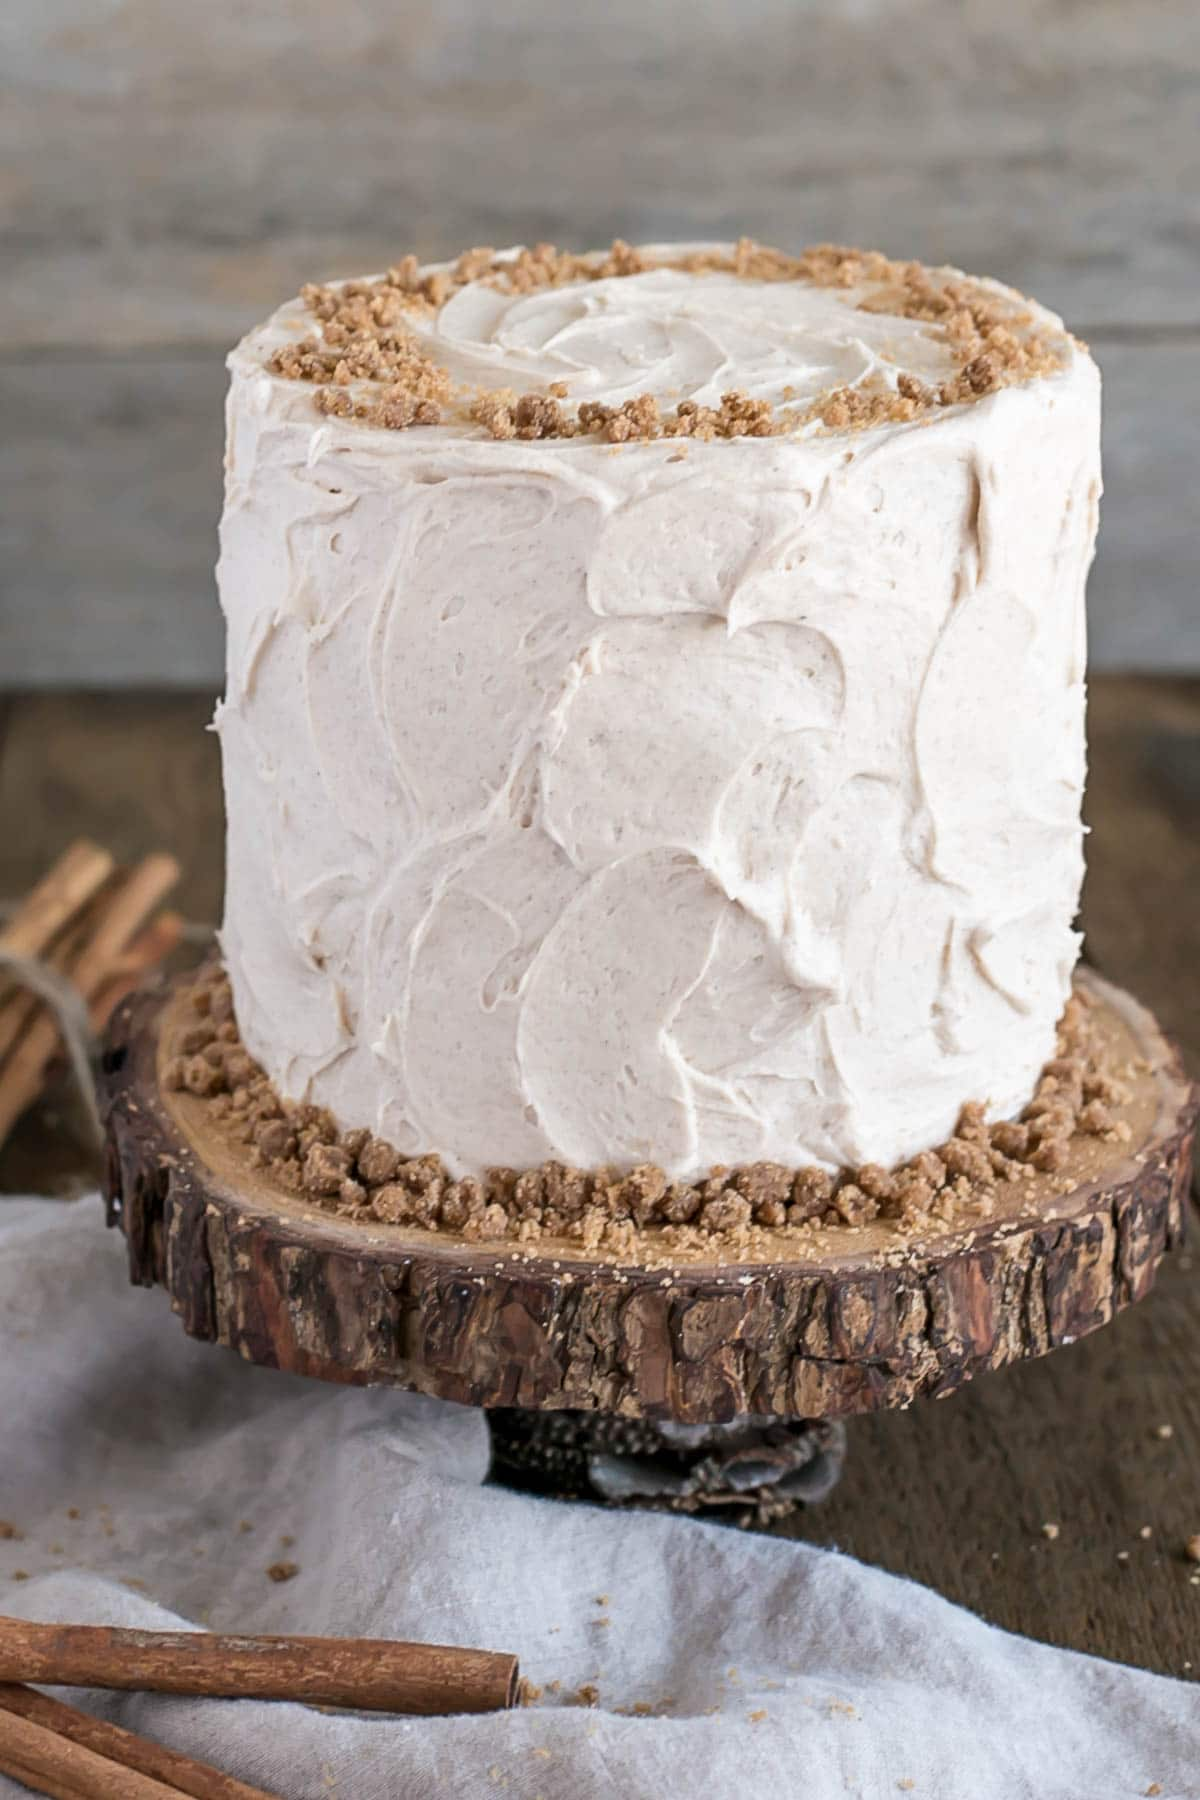 Spice Cake on top of a rustic wooden cake stand.